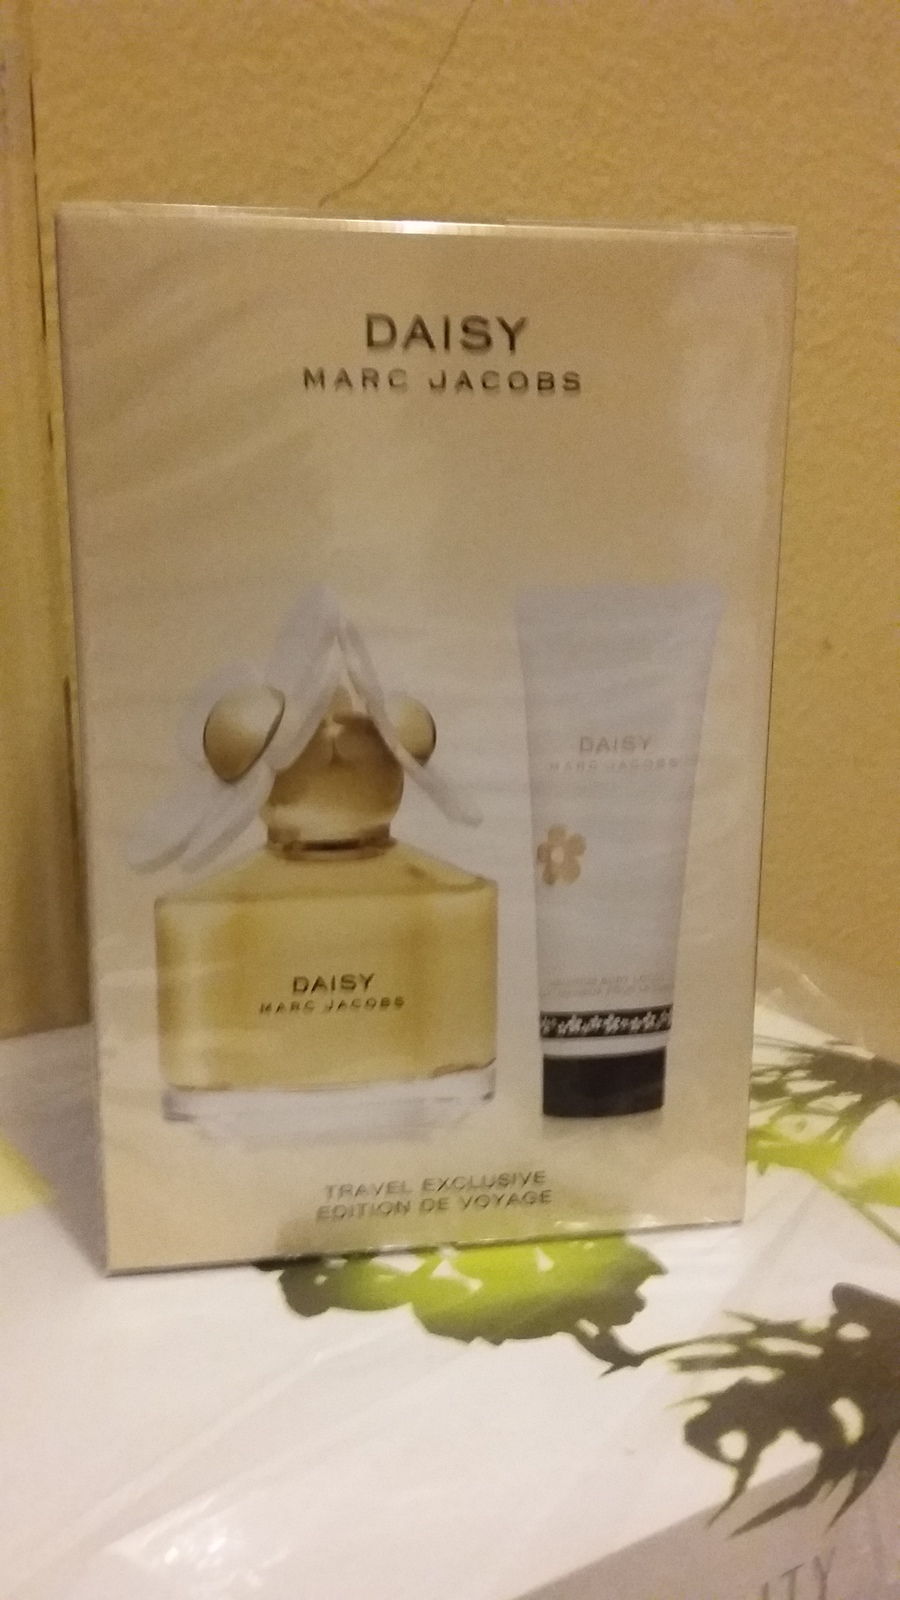 Marc Jacobs Daisy Perfume 3.4 Oz Eau De Toilette Spray 2 Pcs Gift Set